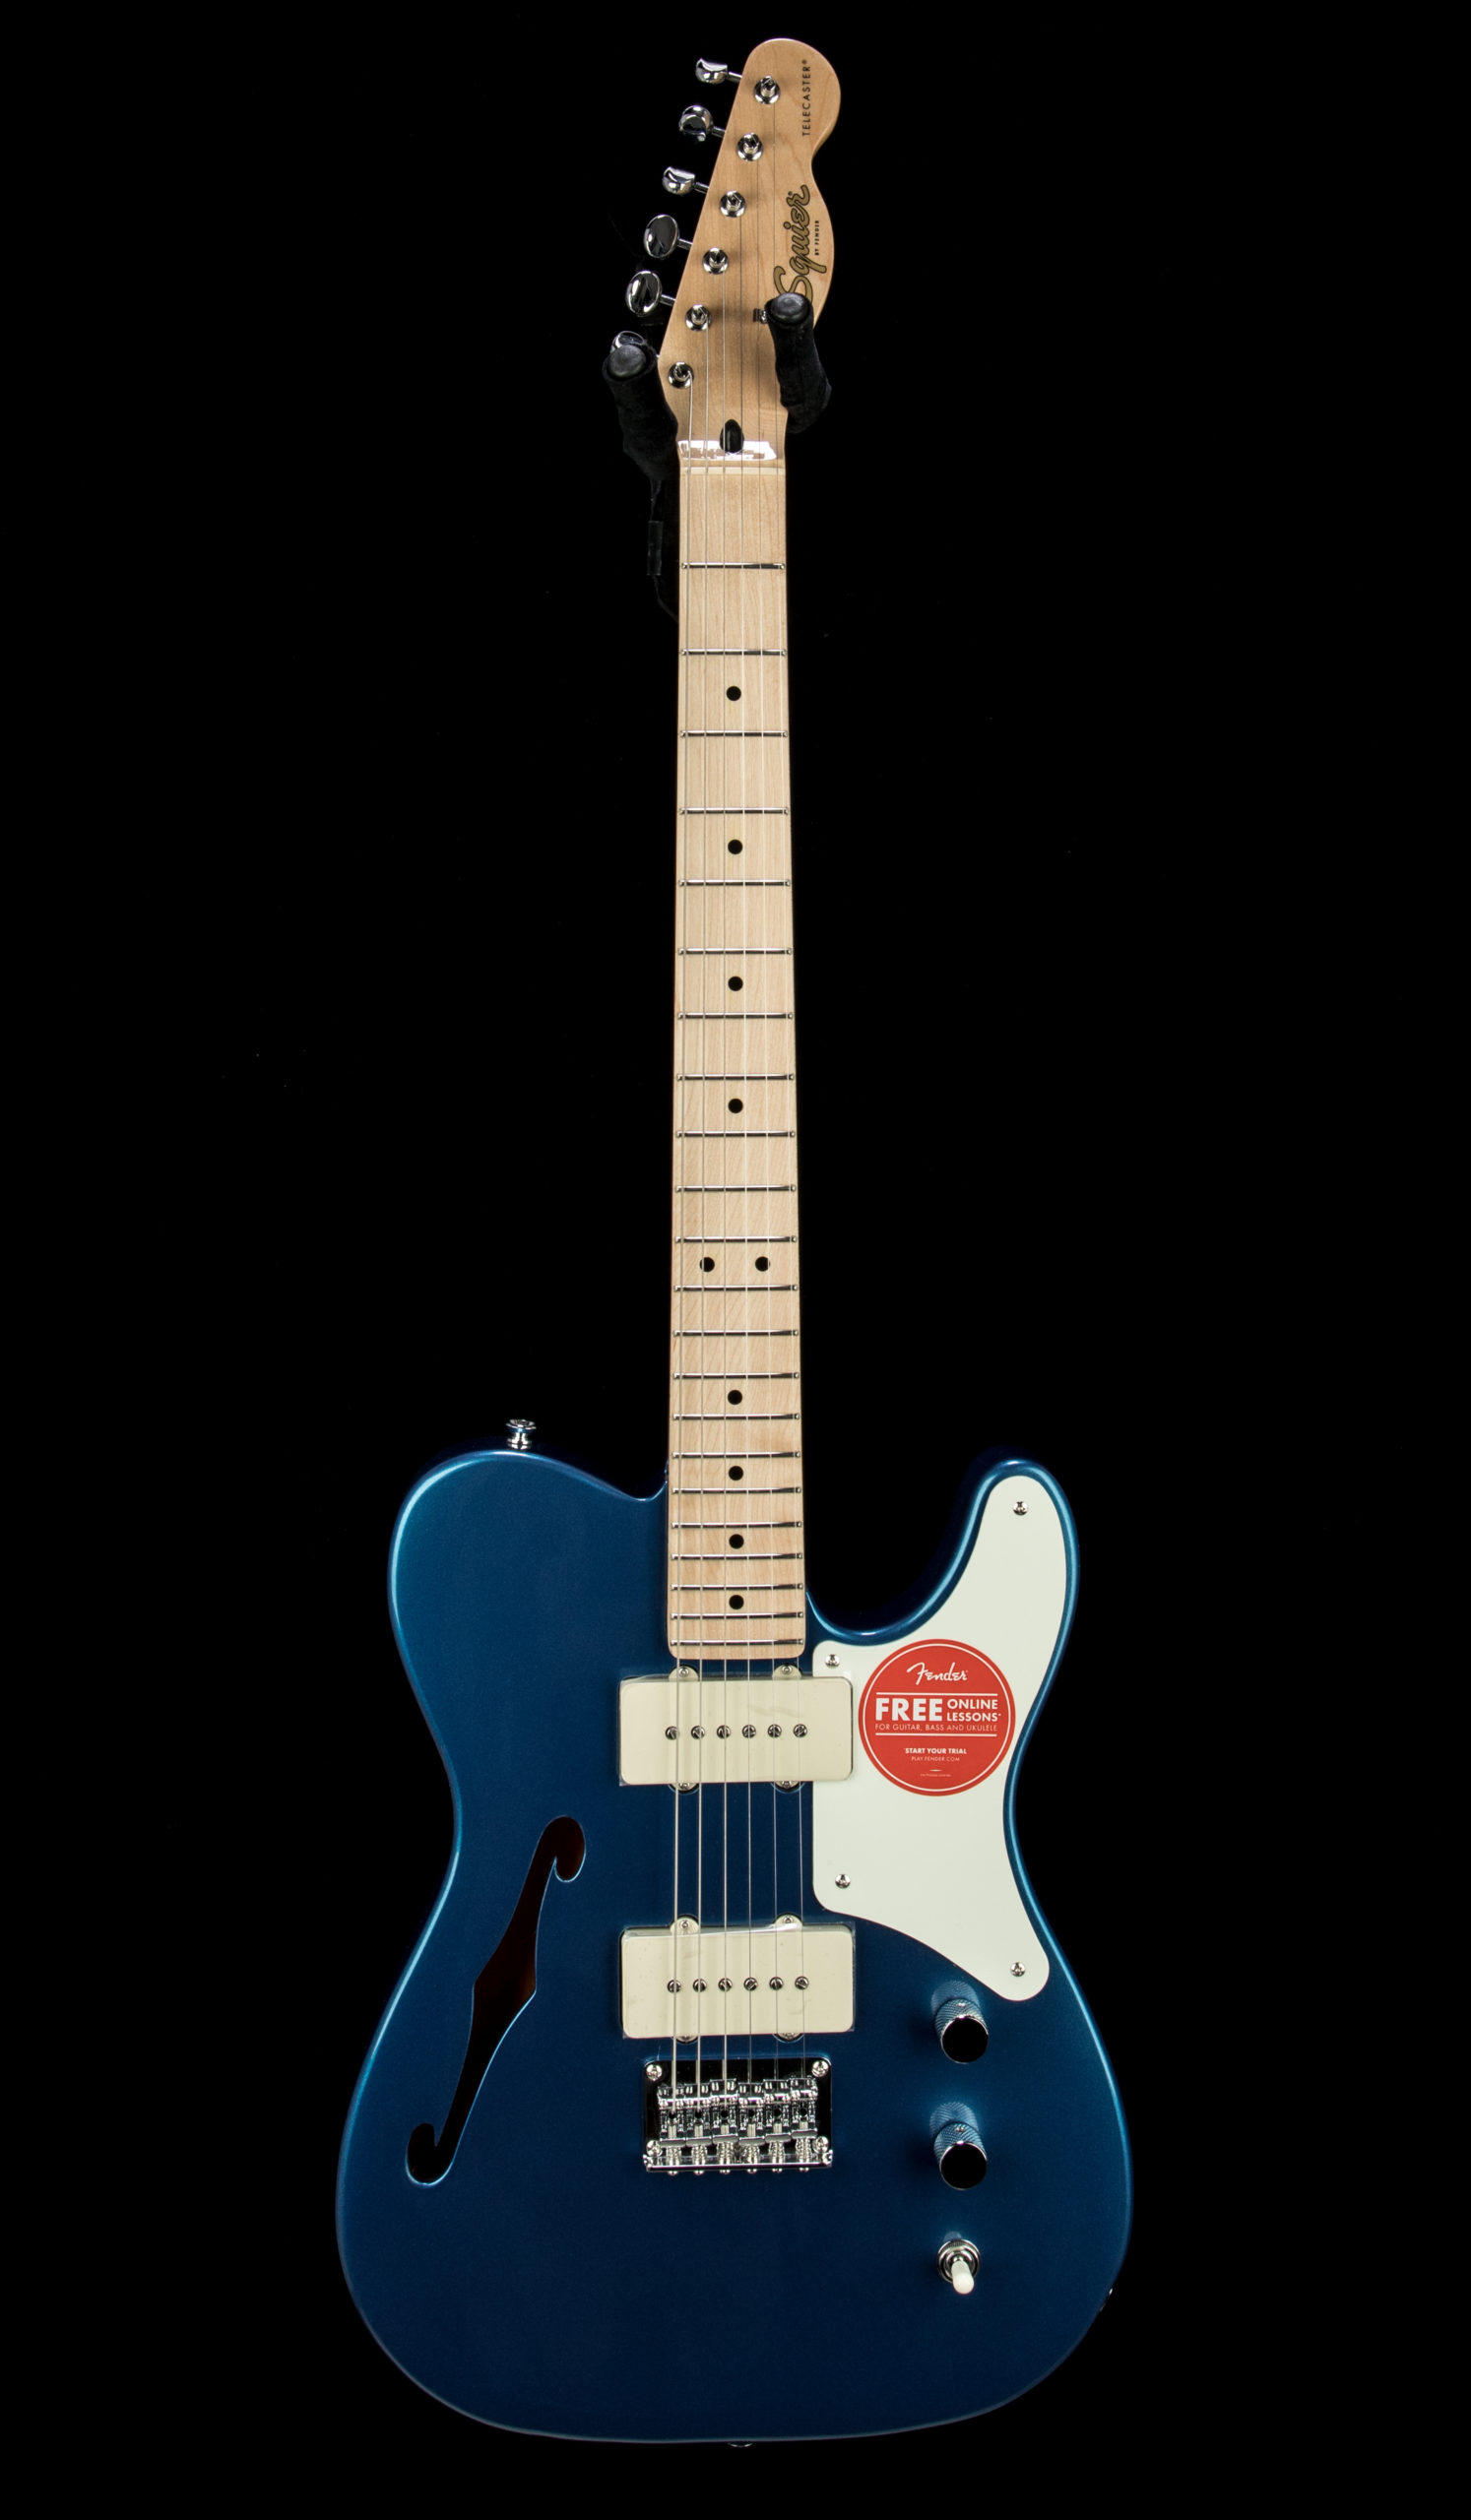 Squier Paranormal Cab Tele Thinline #CYKC21002408 Front